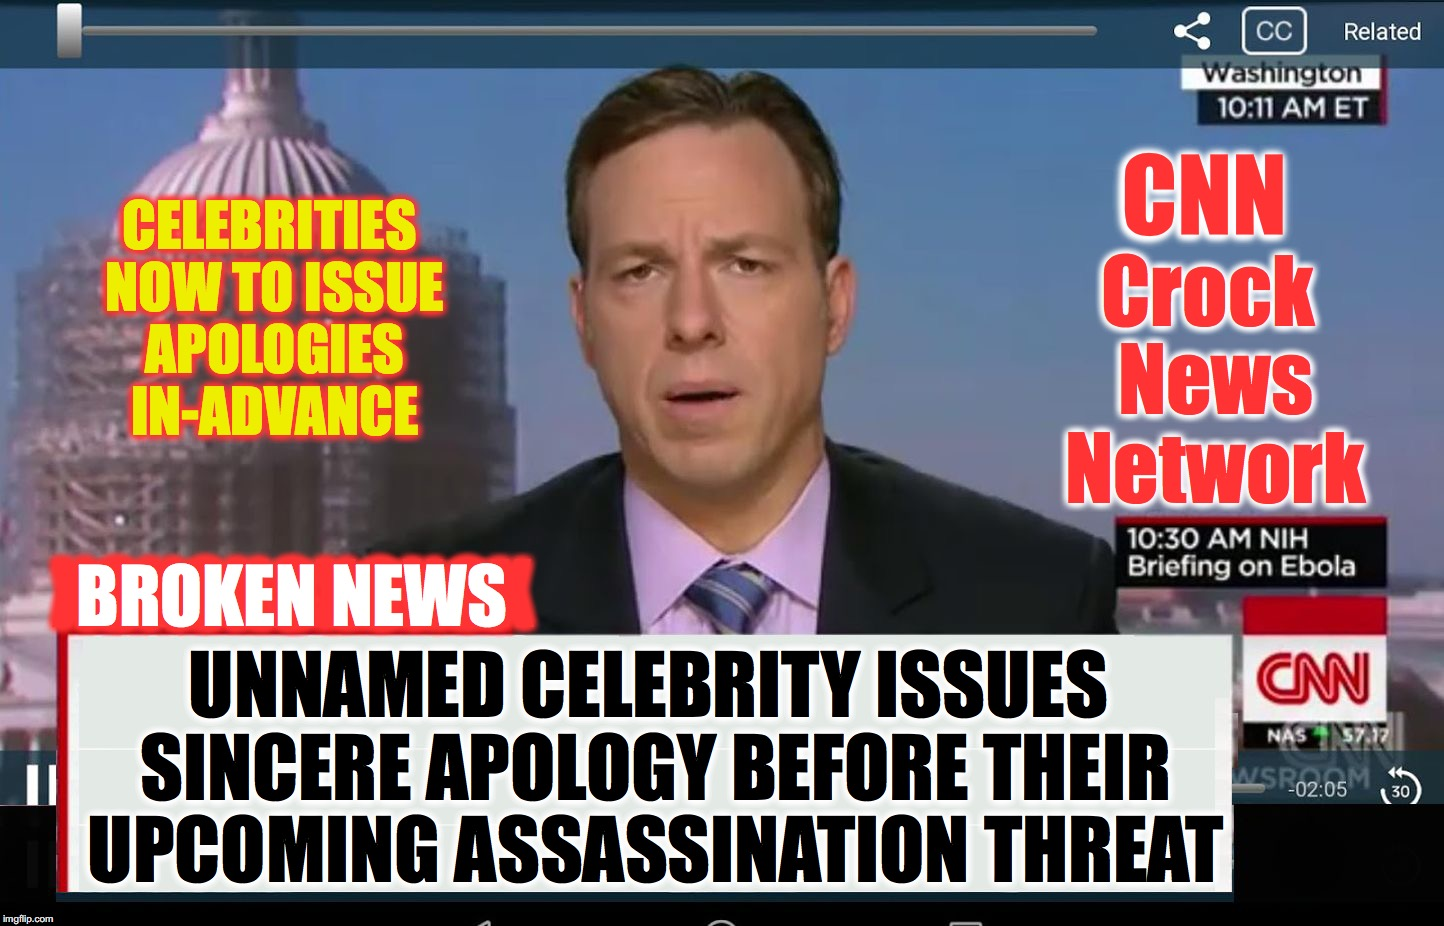 they might as well apologize ahead of time and get it over with | CELEBRITIES NOW TO ISSUE APOLOGIES IN-ADVANCE UNNAMED CELEBRITY ISSUES SINCERE APOLOGY BEFORE THEIR UPCOMING ASSASSINATION THREAT CNN Crock  | image tagged in cnn crazy news network | made w/ Imgflip meme maker